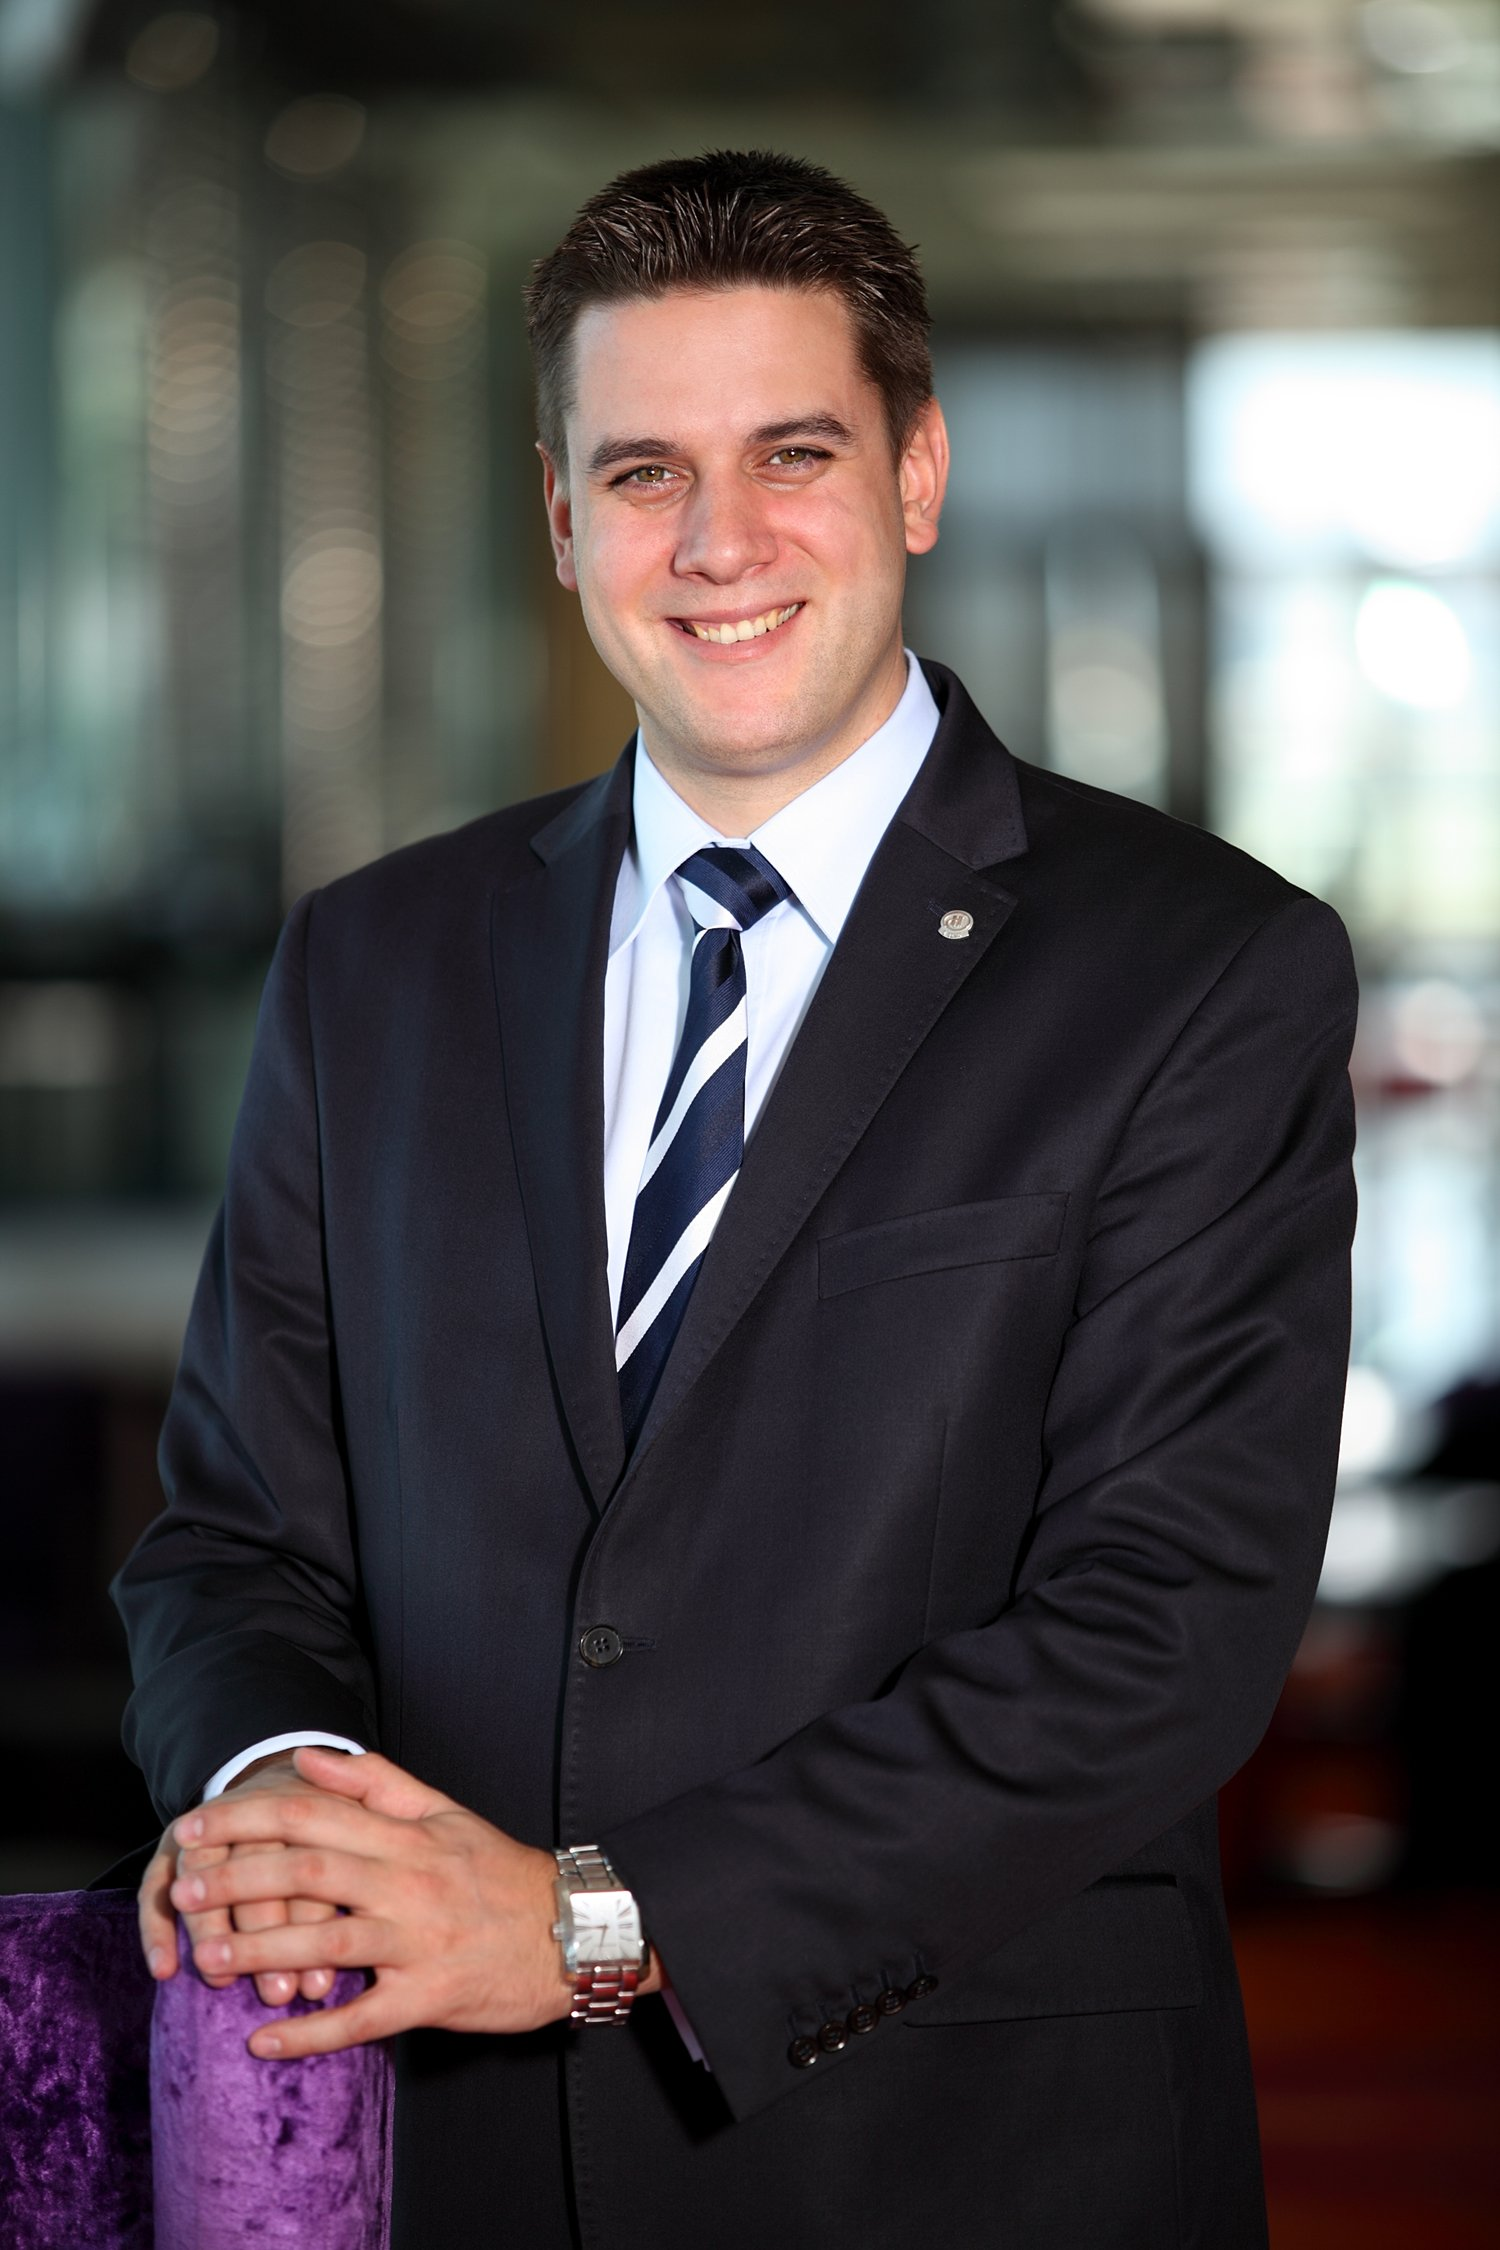 Daniel Baranowski was appointed Director of Operations at the 5* star Marriott Moscow Royal Aurora hotel